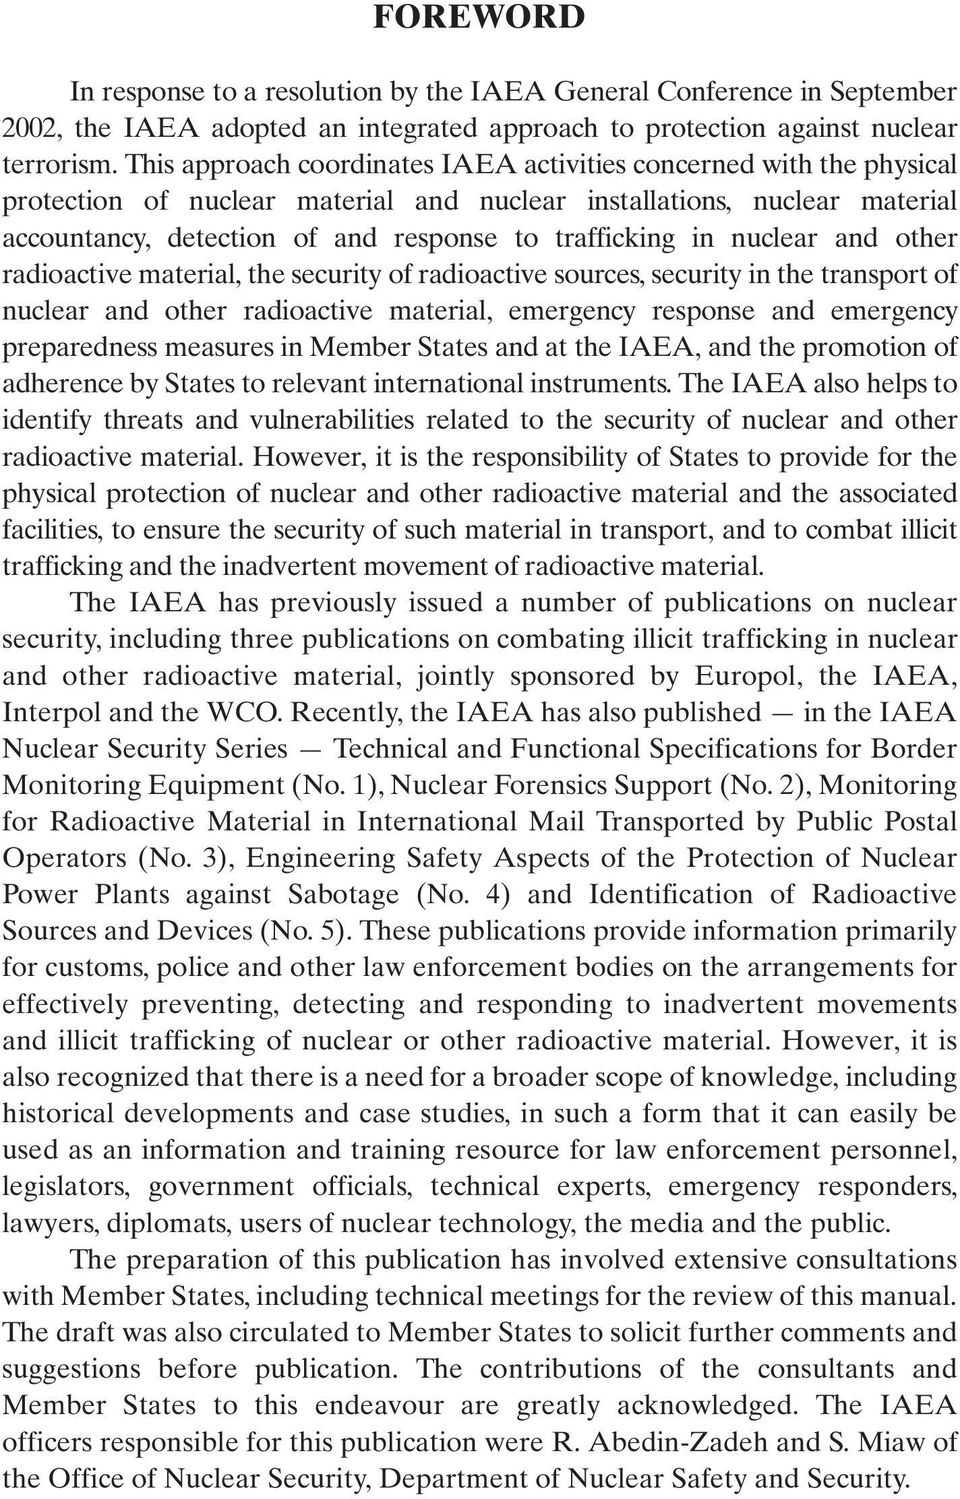 in nuclear and other radioactive material, the security of radioactive sources, security in the transport of nuclear and other radioactive material, emergency response and emergency preparedness